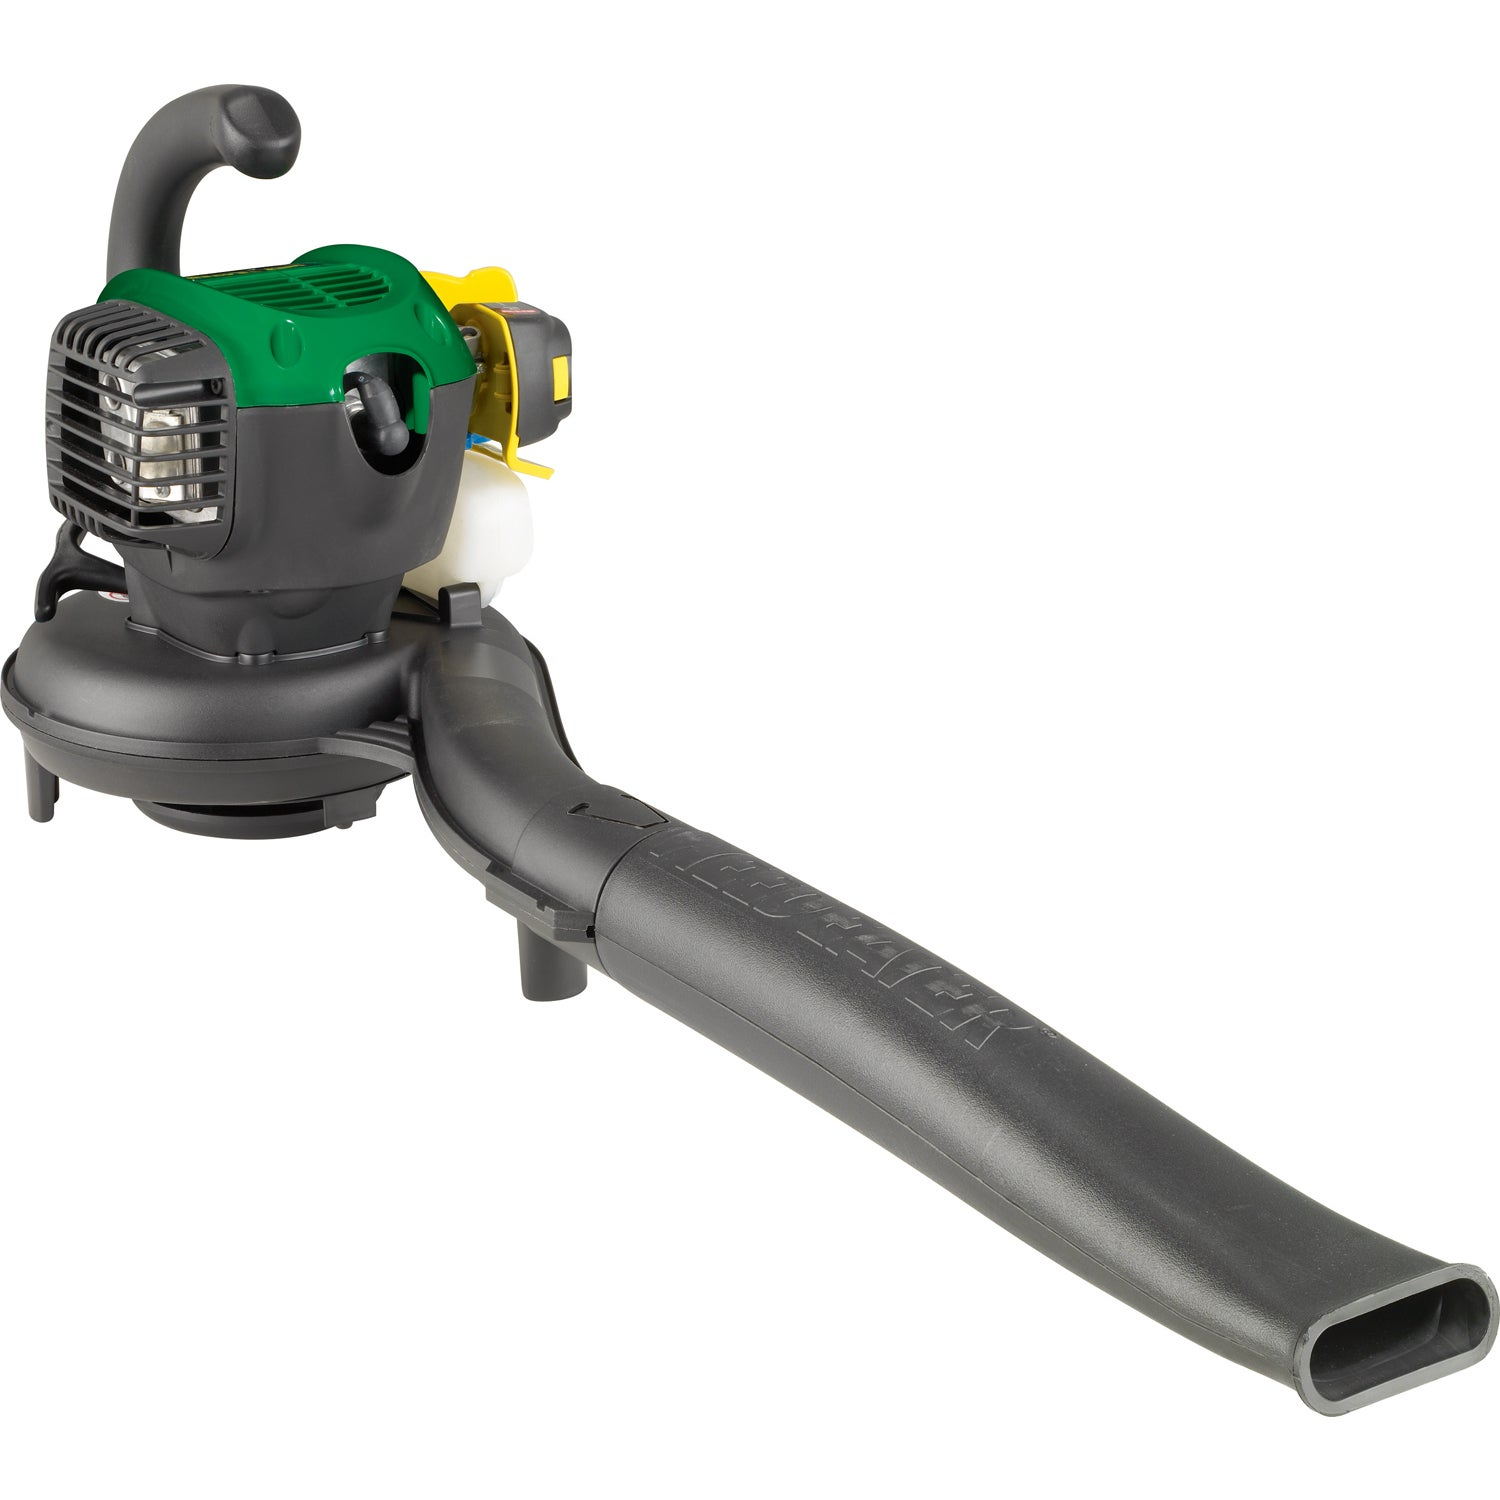 Weed Eater 952711937 25 cc 170 MPH Blower (Blowers), Mult...